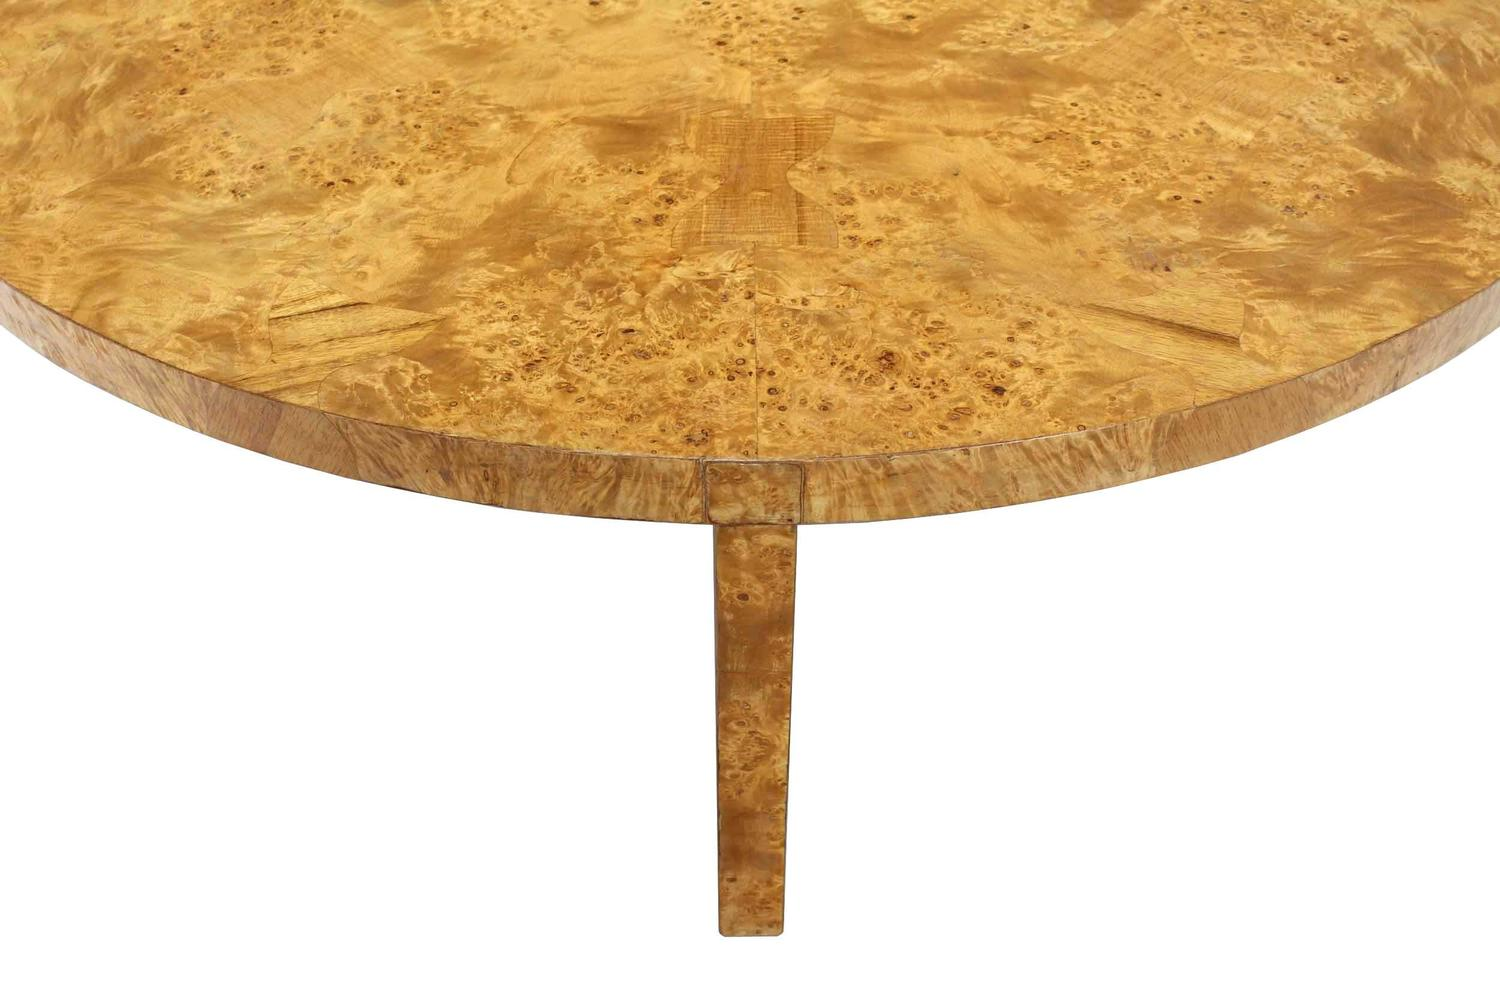 Large Round Burl Wood Coffee Table For Sale At 1stdibs